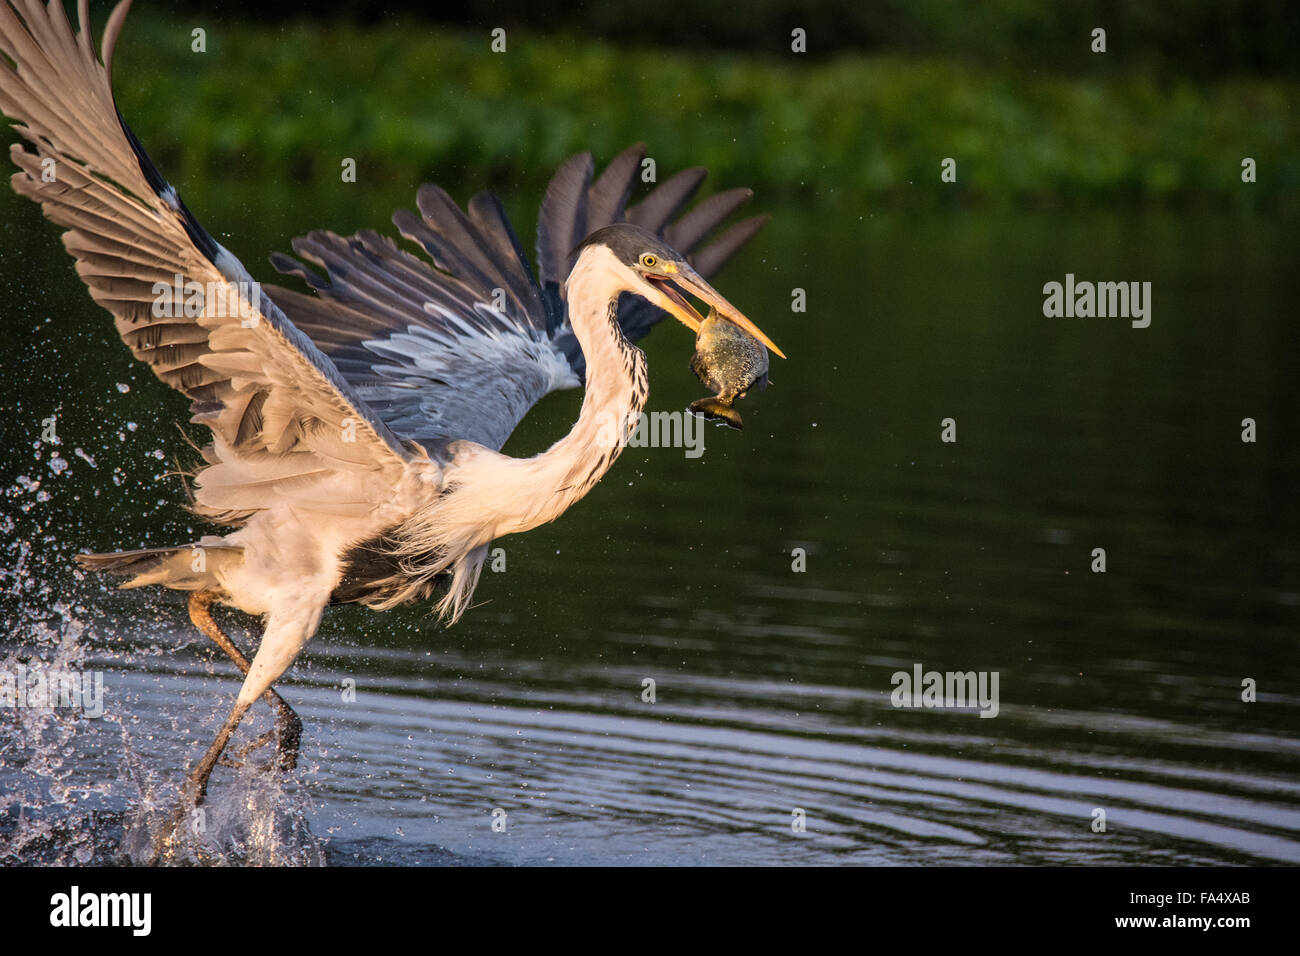 Cocoi Heron or White-necked Heron, Ardea cocoi, taking off with a fish in its beak, in the Pantanal, Mato Grosso, Stock Photo